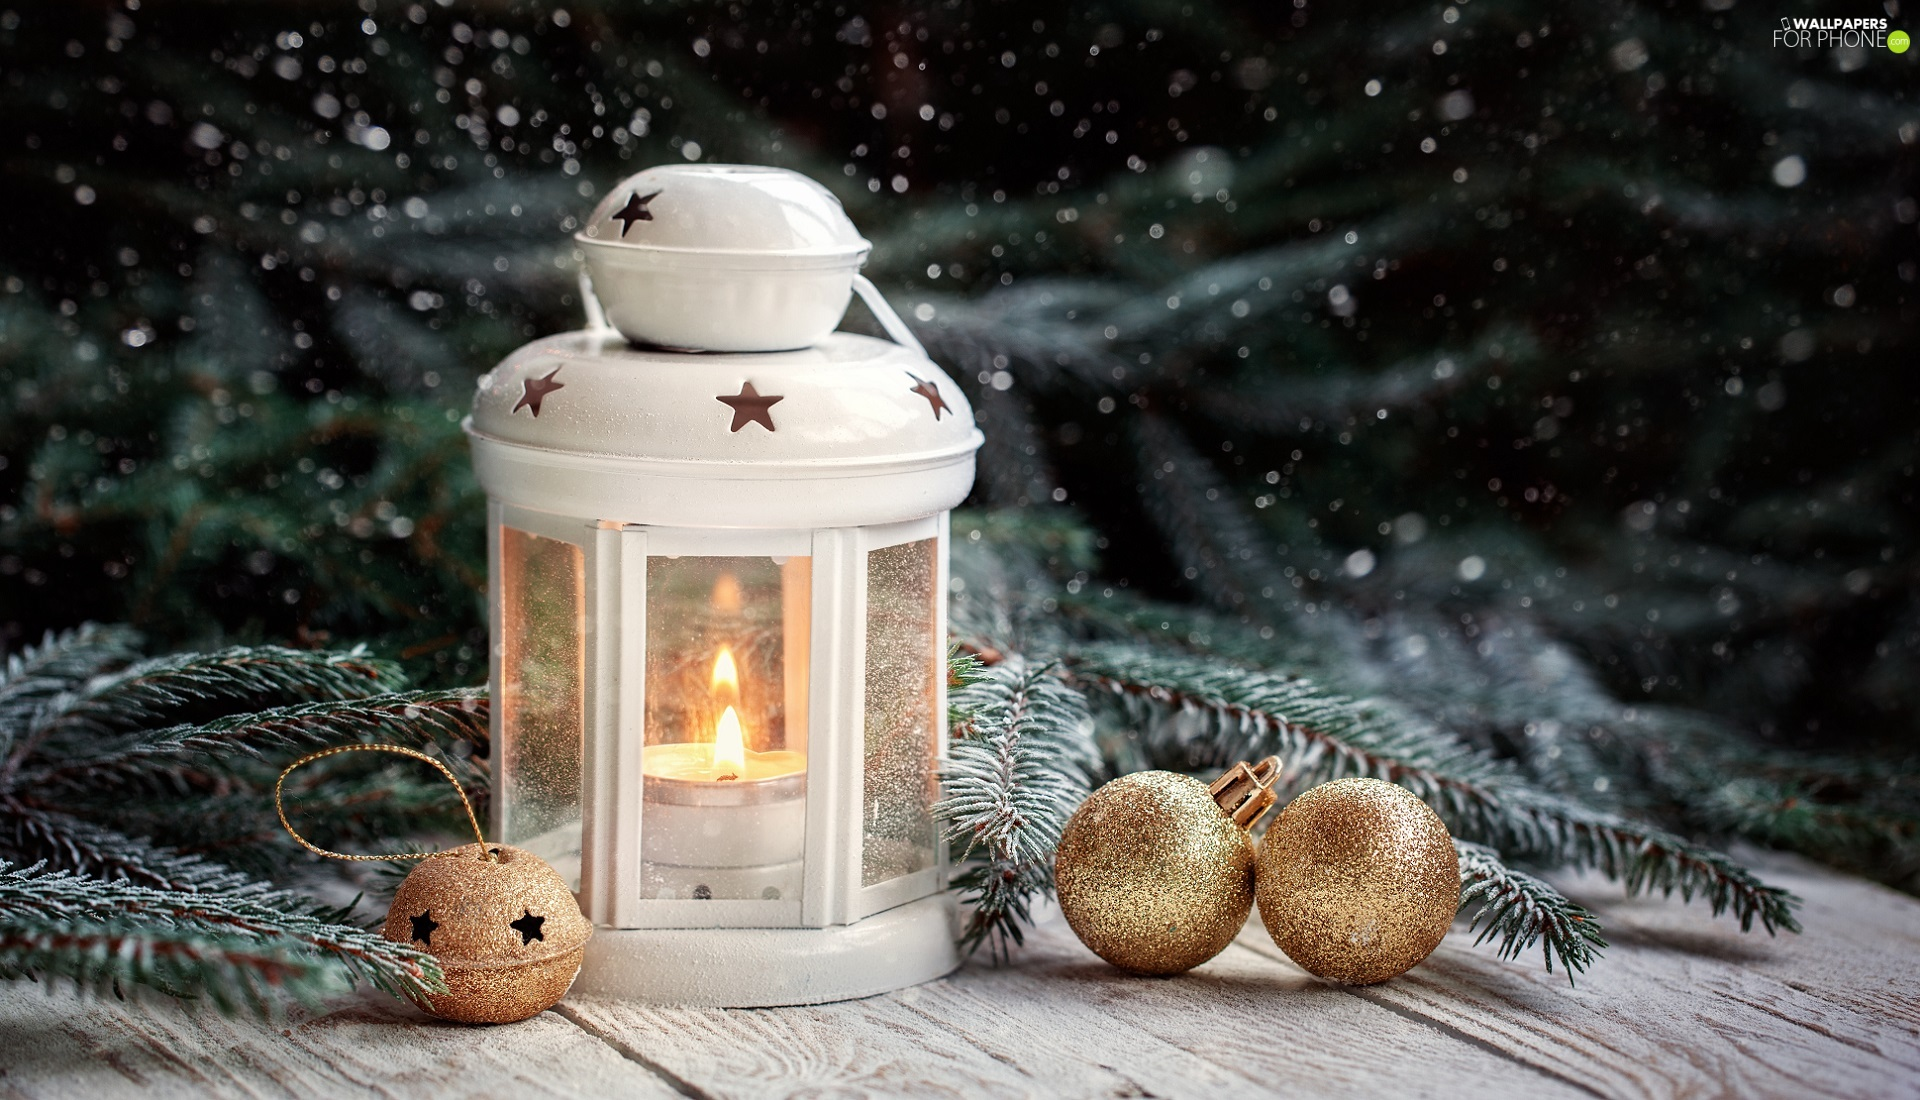 lantern, baubles, Twigs, White, Golden, spruce, Christmas